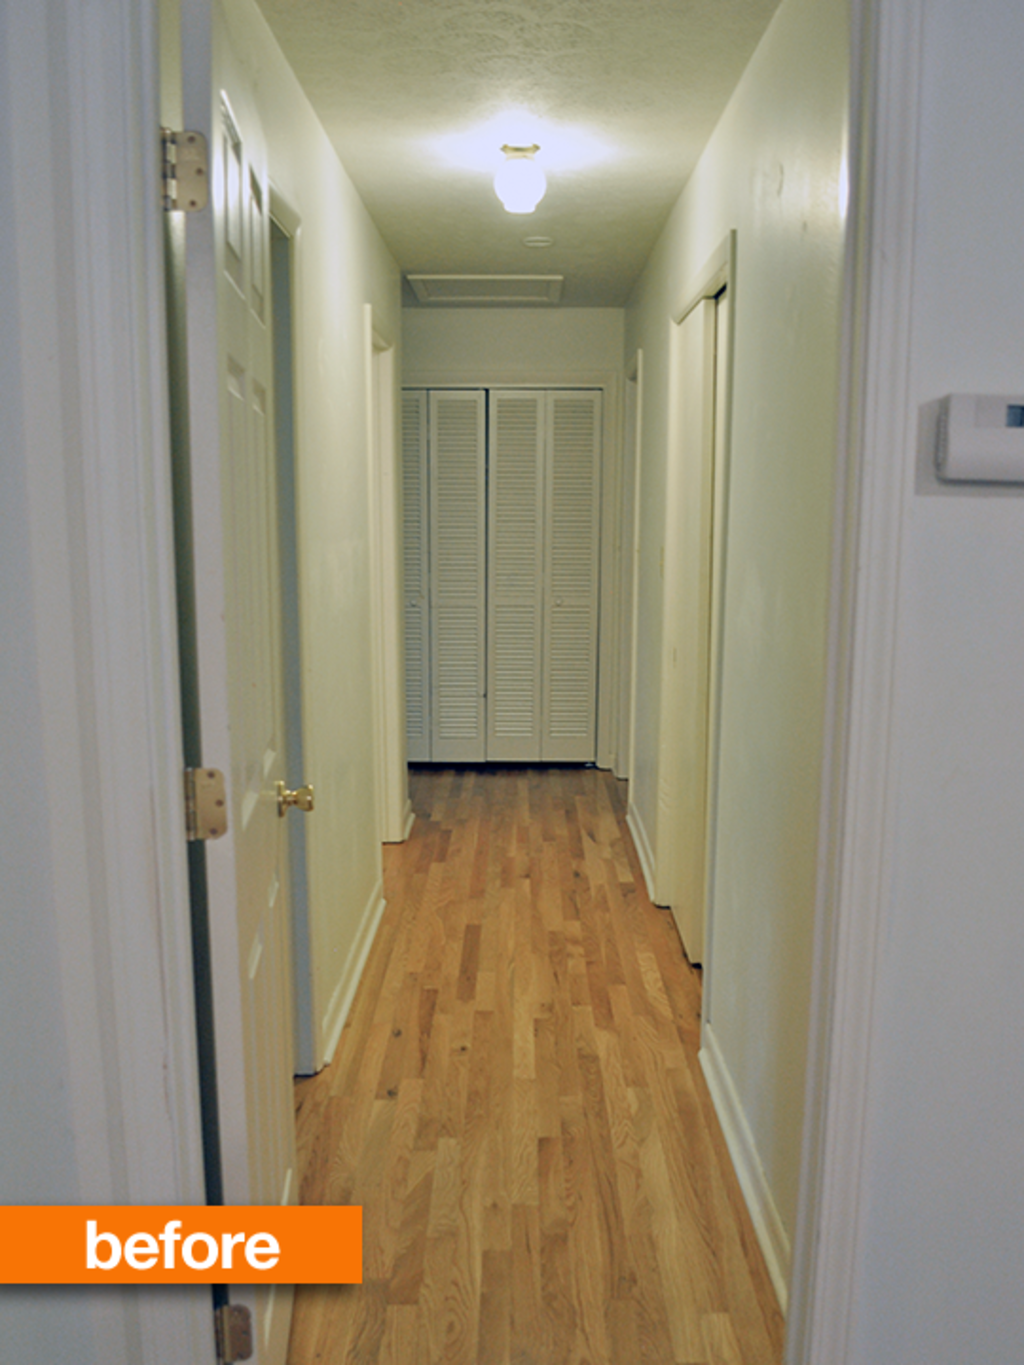 Before & After: Newly Painted Hallway is a Stroke of Genius